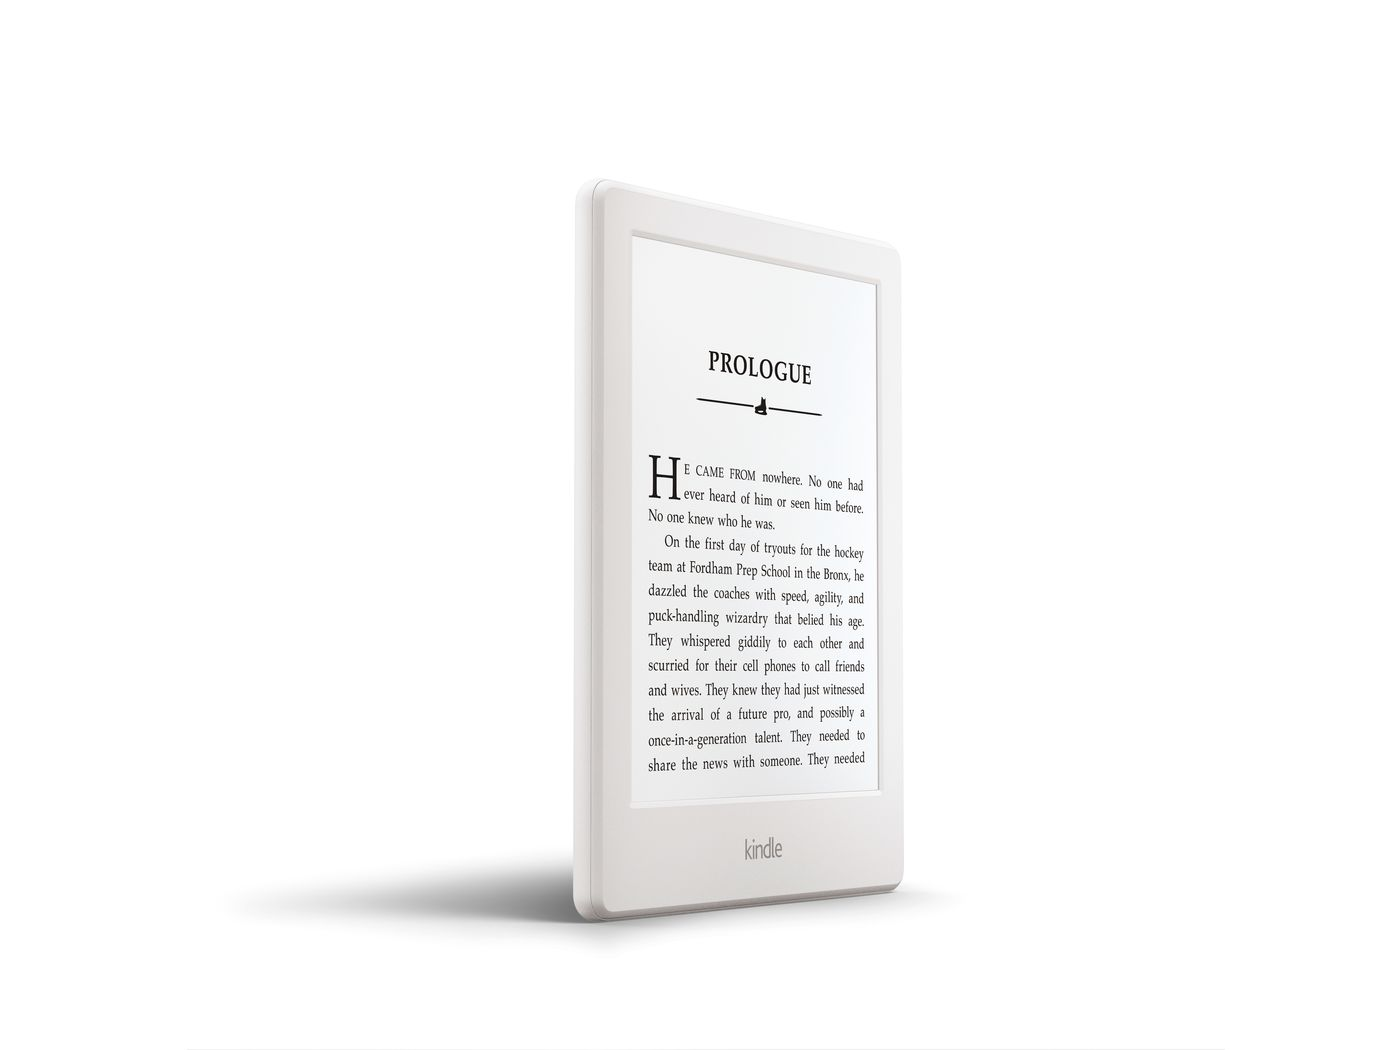 Amazon's redesigned Kindle is thinner, lighter, and comes in